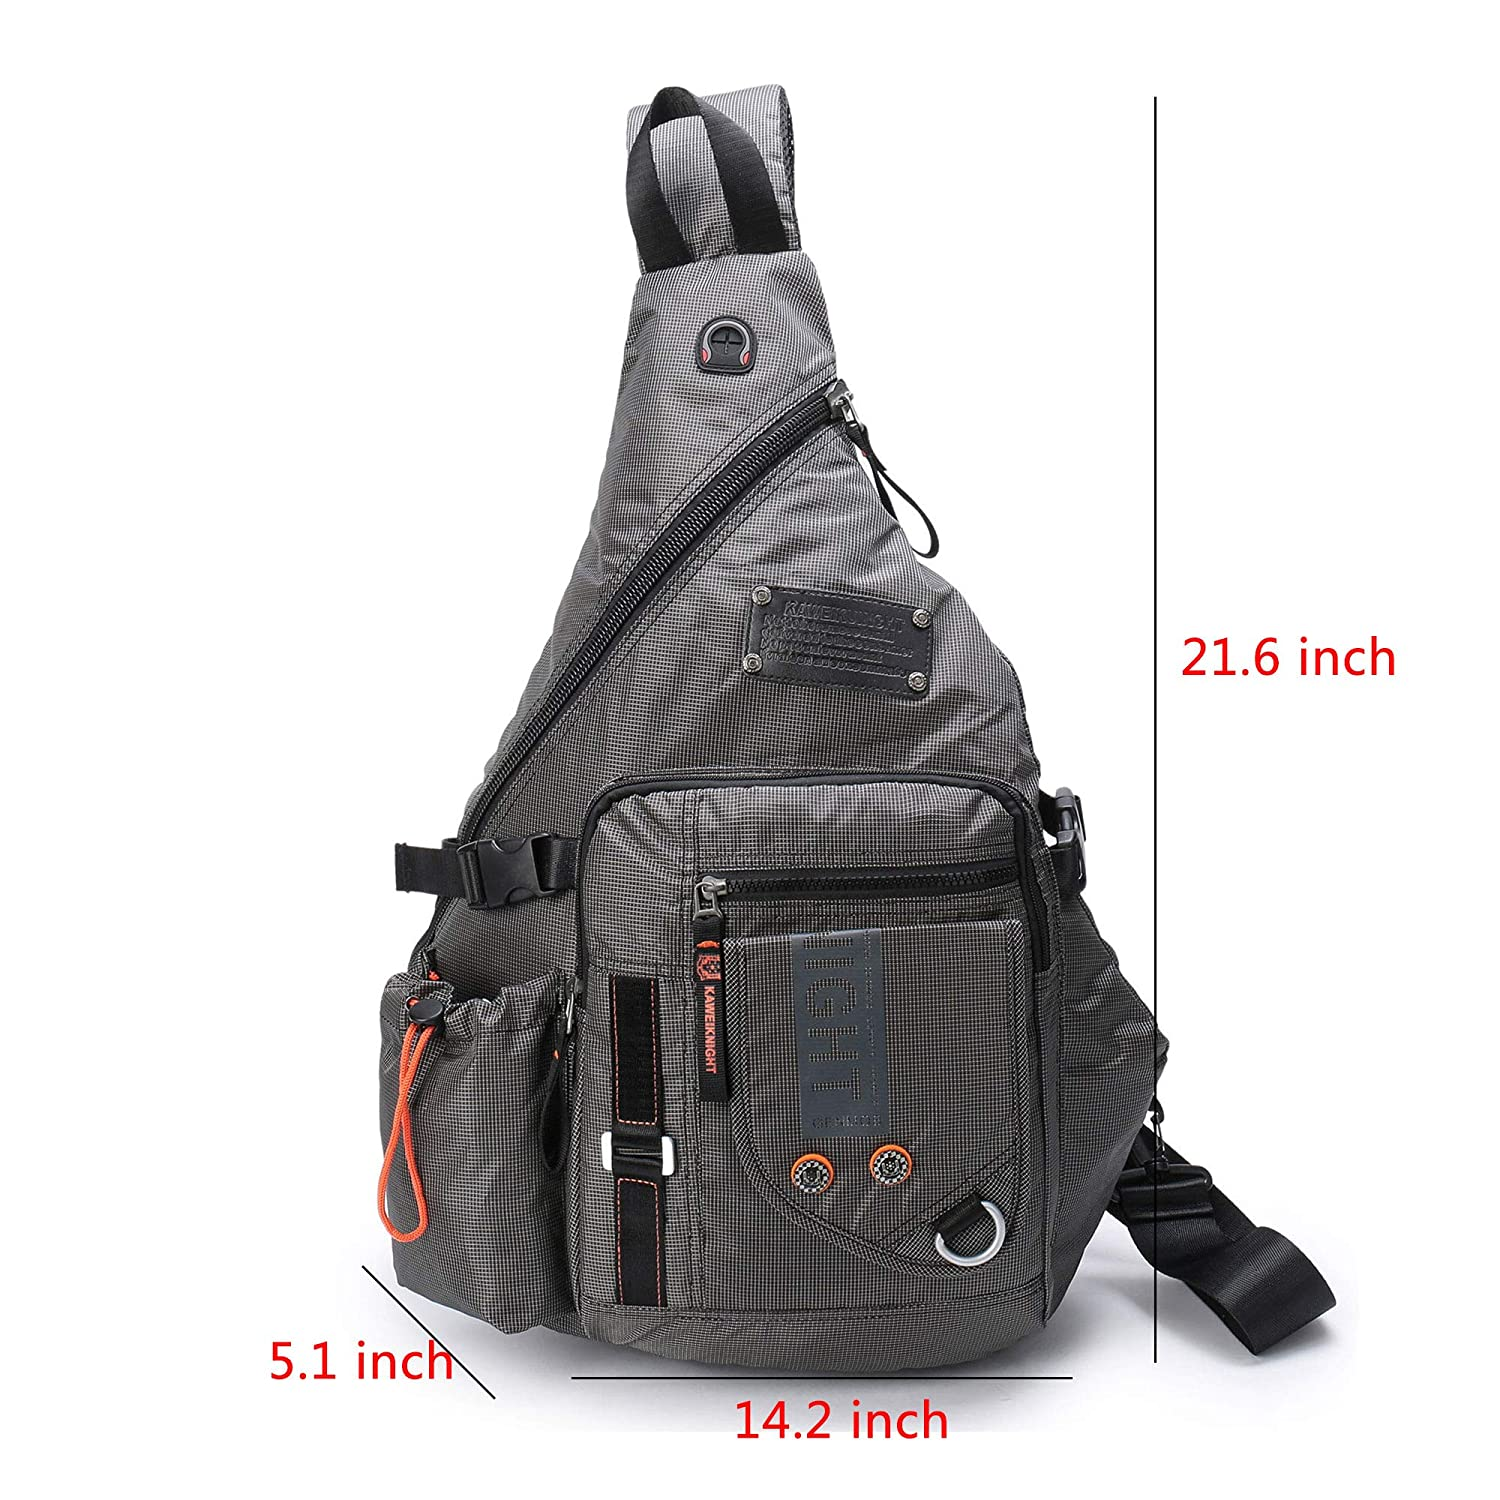 9a5224326a Amazon.com  DDDH Large Sling Bags Crossbody Backpack 14.1-Inch Chest  Daypack Travel Bag Book Bag for Men Women(Grey)  Computers   Accessories